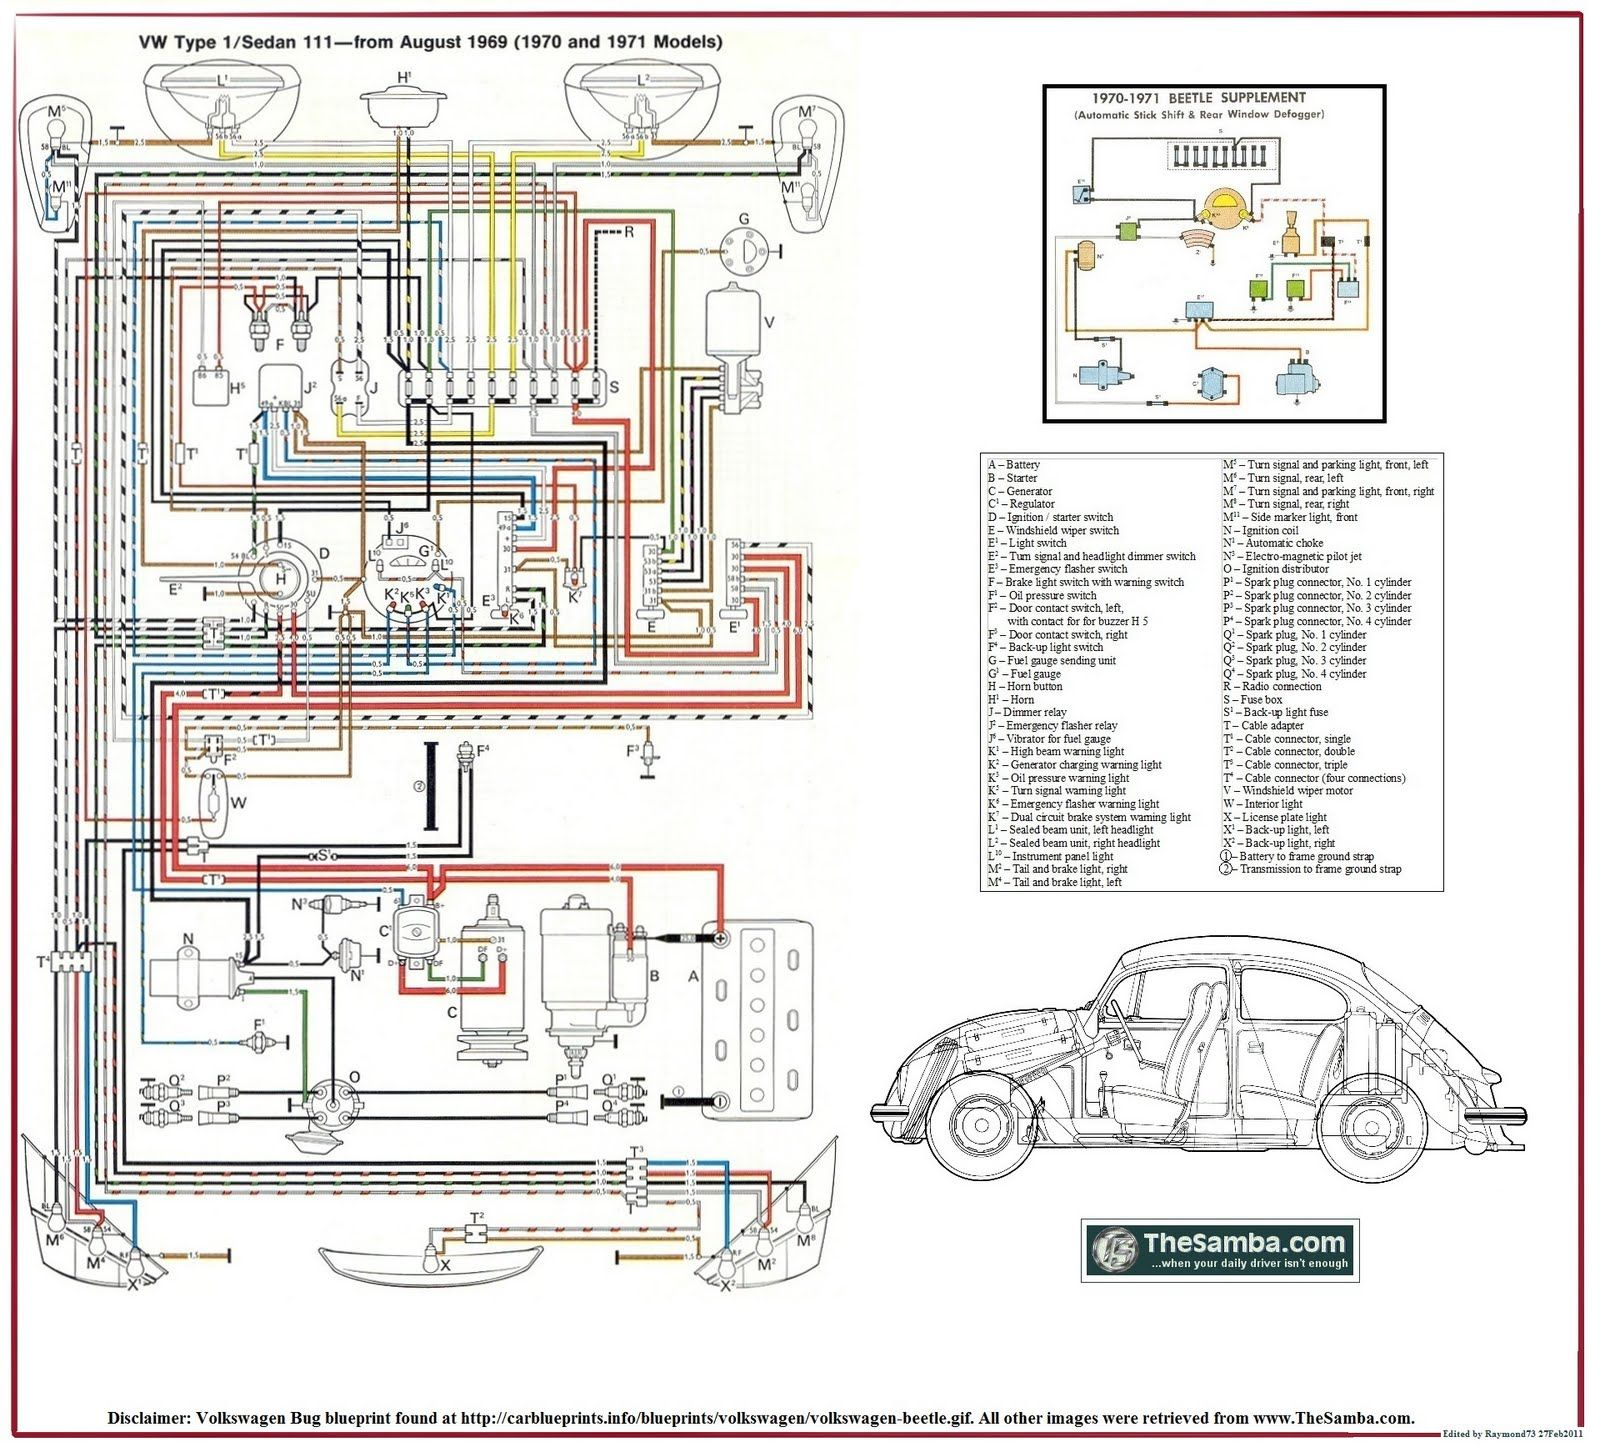 Elétrica VW AR: Esquema Elétrico Fusca 70 e 71. | Beetle | Pinterest on vw alt wiring-diagram, 1971 vw karmann ghia wiring-diagram, 70 vw coil wiring, 71 bug wiring-diagram, 70 vw dimensions, 70 vw ignition diagram, 70 vw parts, 70 vw cabriolet, 74 bug wiring-diagram, 70 vw beetle, 64 volkswagen bug wiring-diagram,